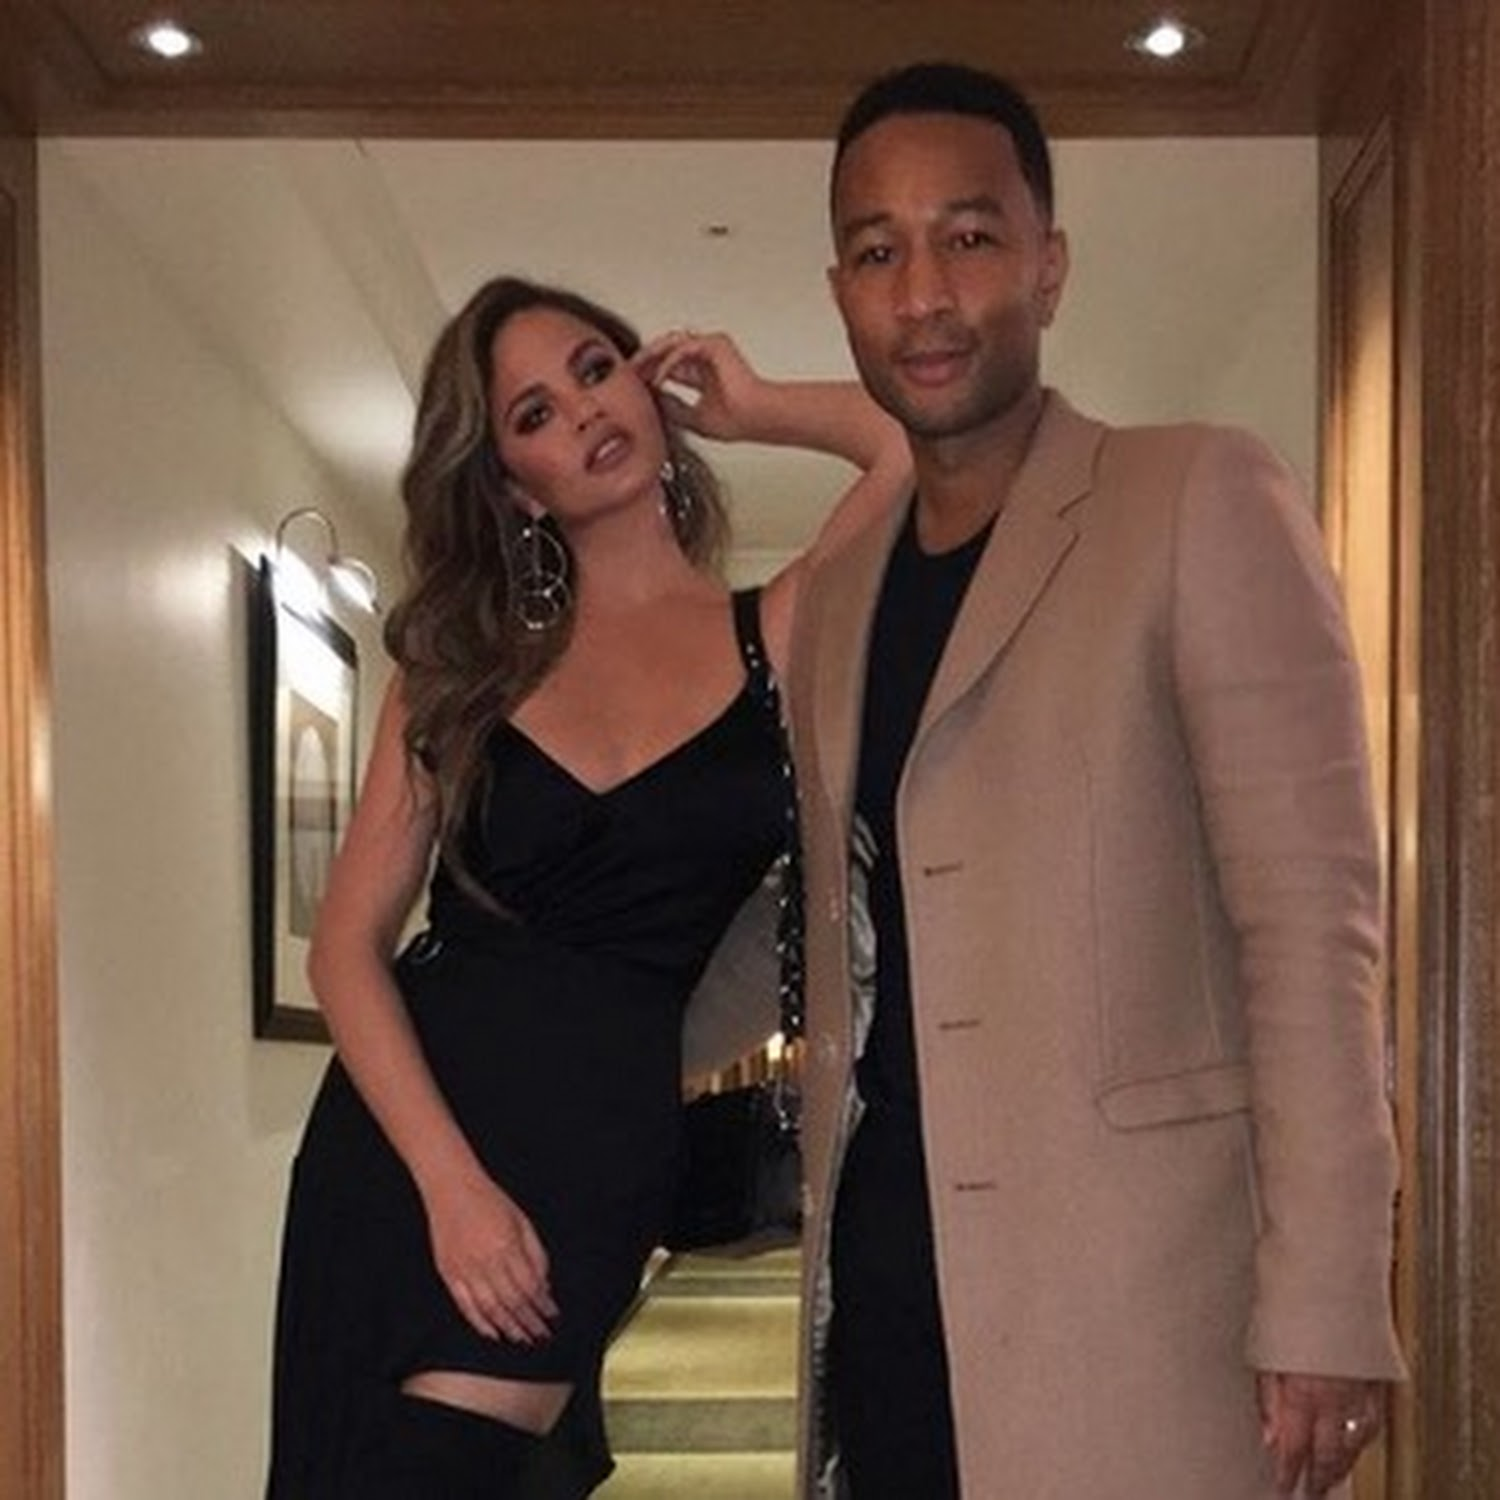 This Insta Post By Chrissy Teigen Before Her Miscarriage Will Break Your Heart